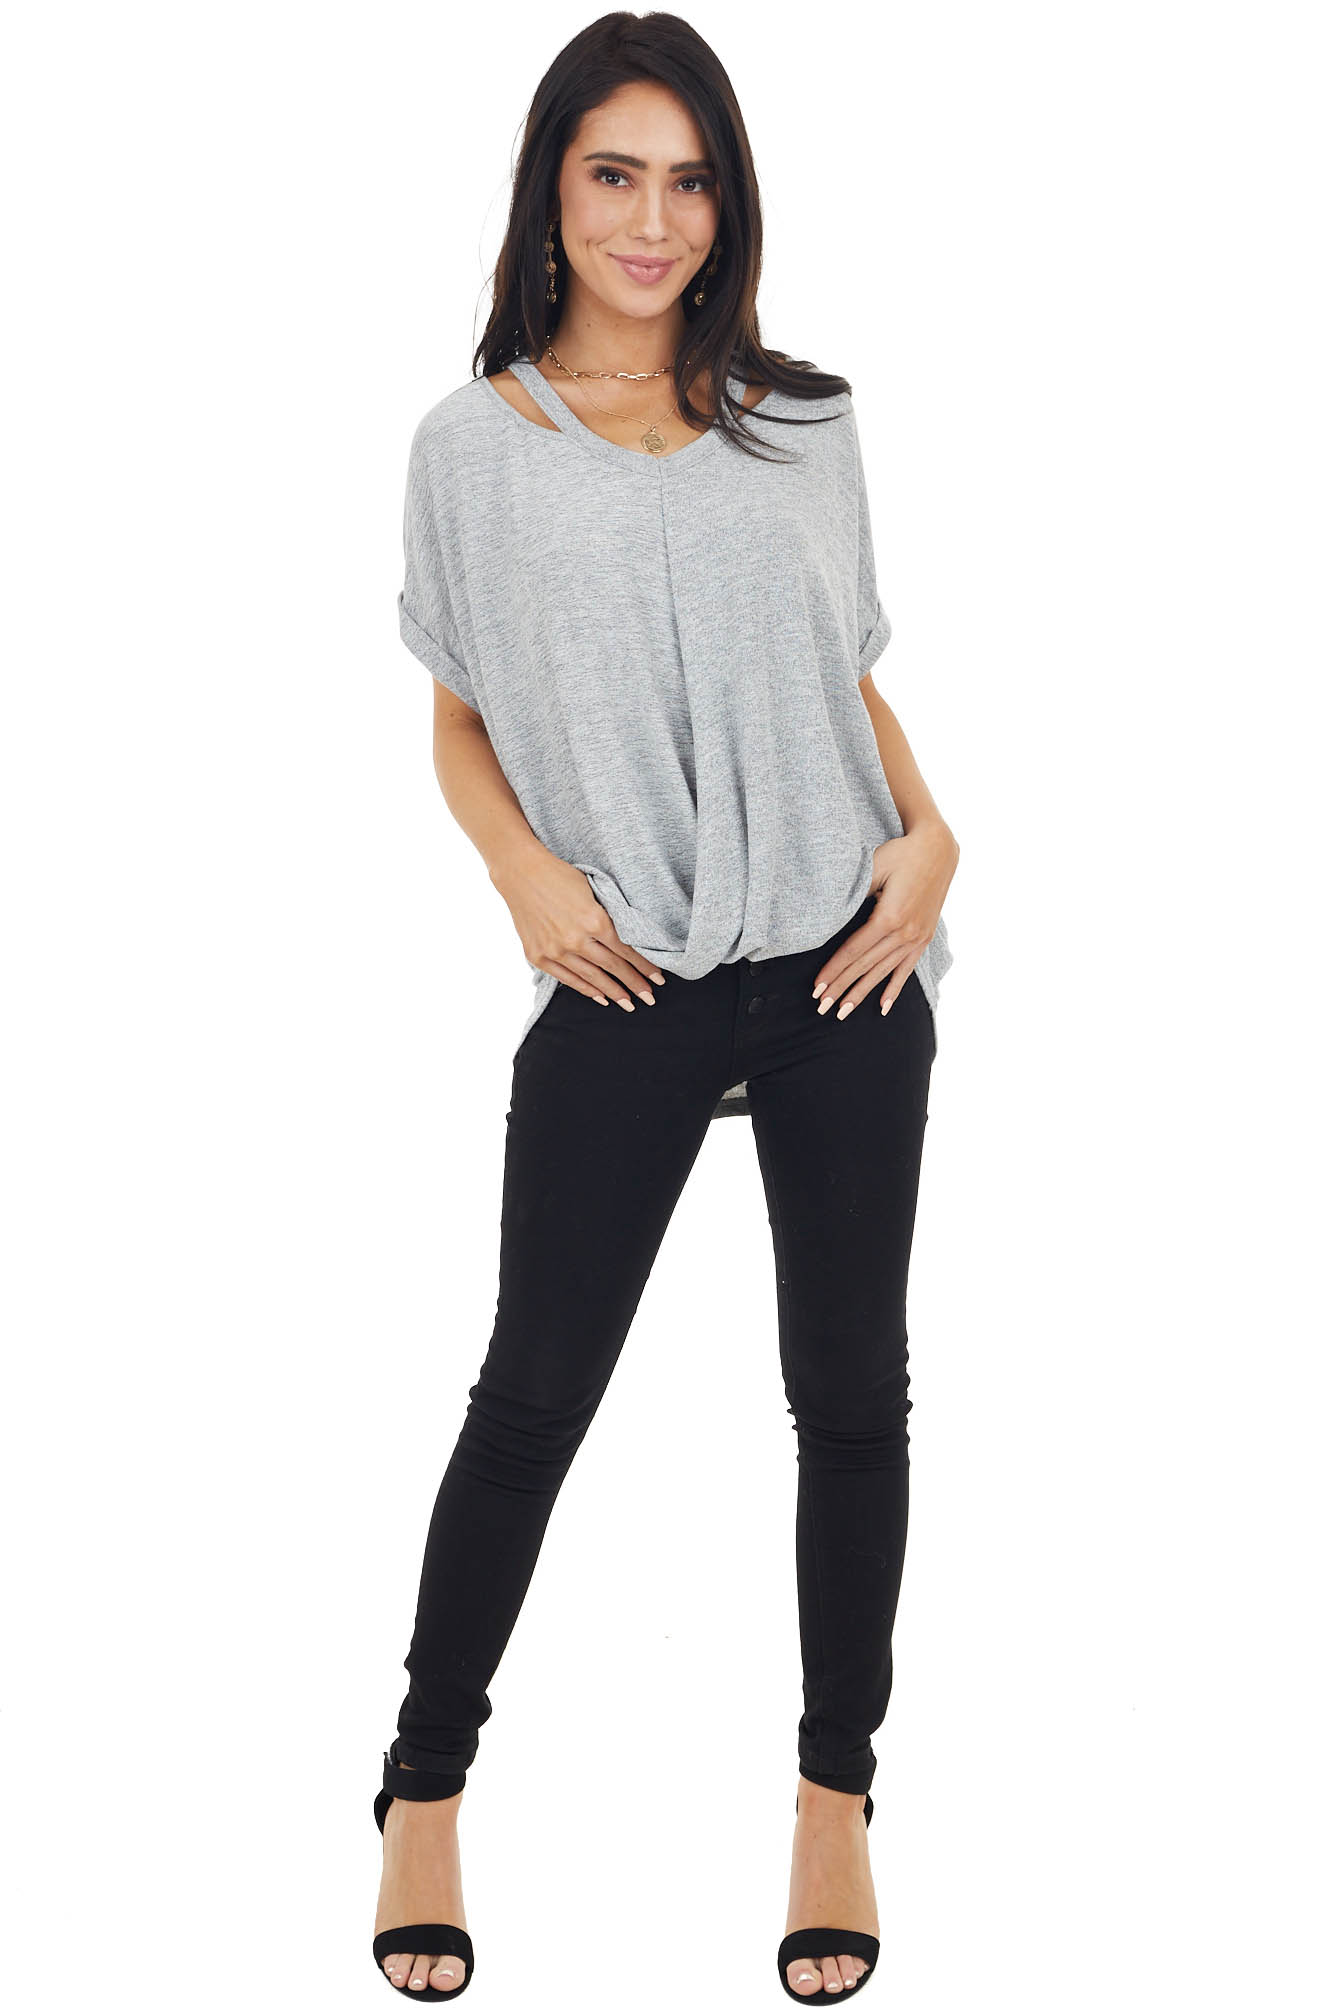 Dove Grey Knit Top with Bubble Hemline and Cutout Detail